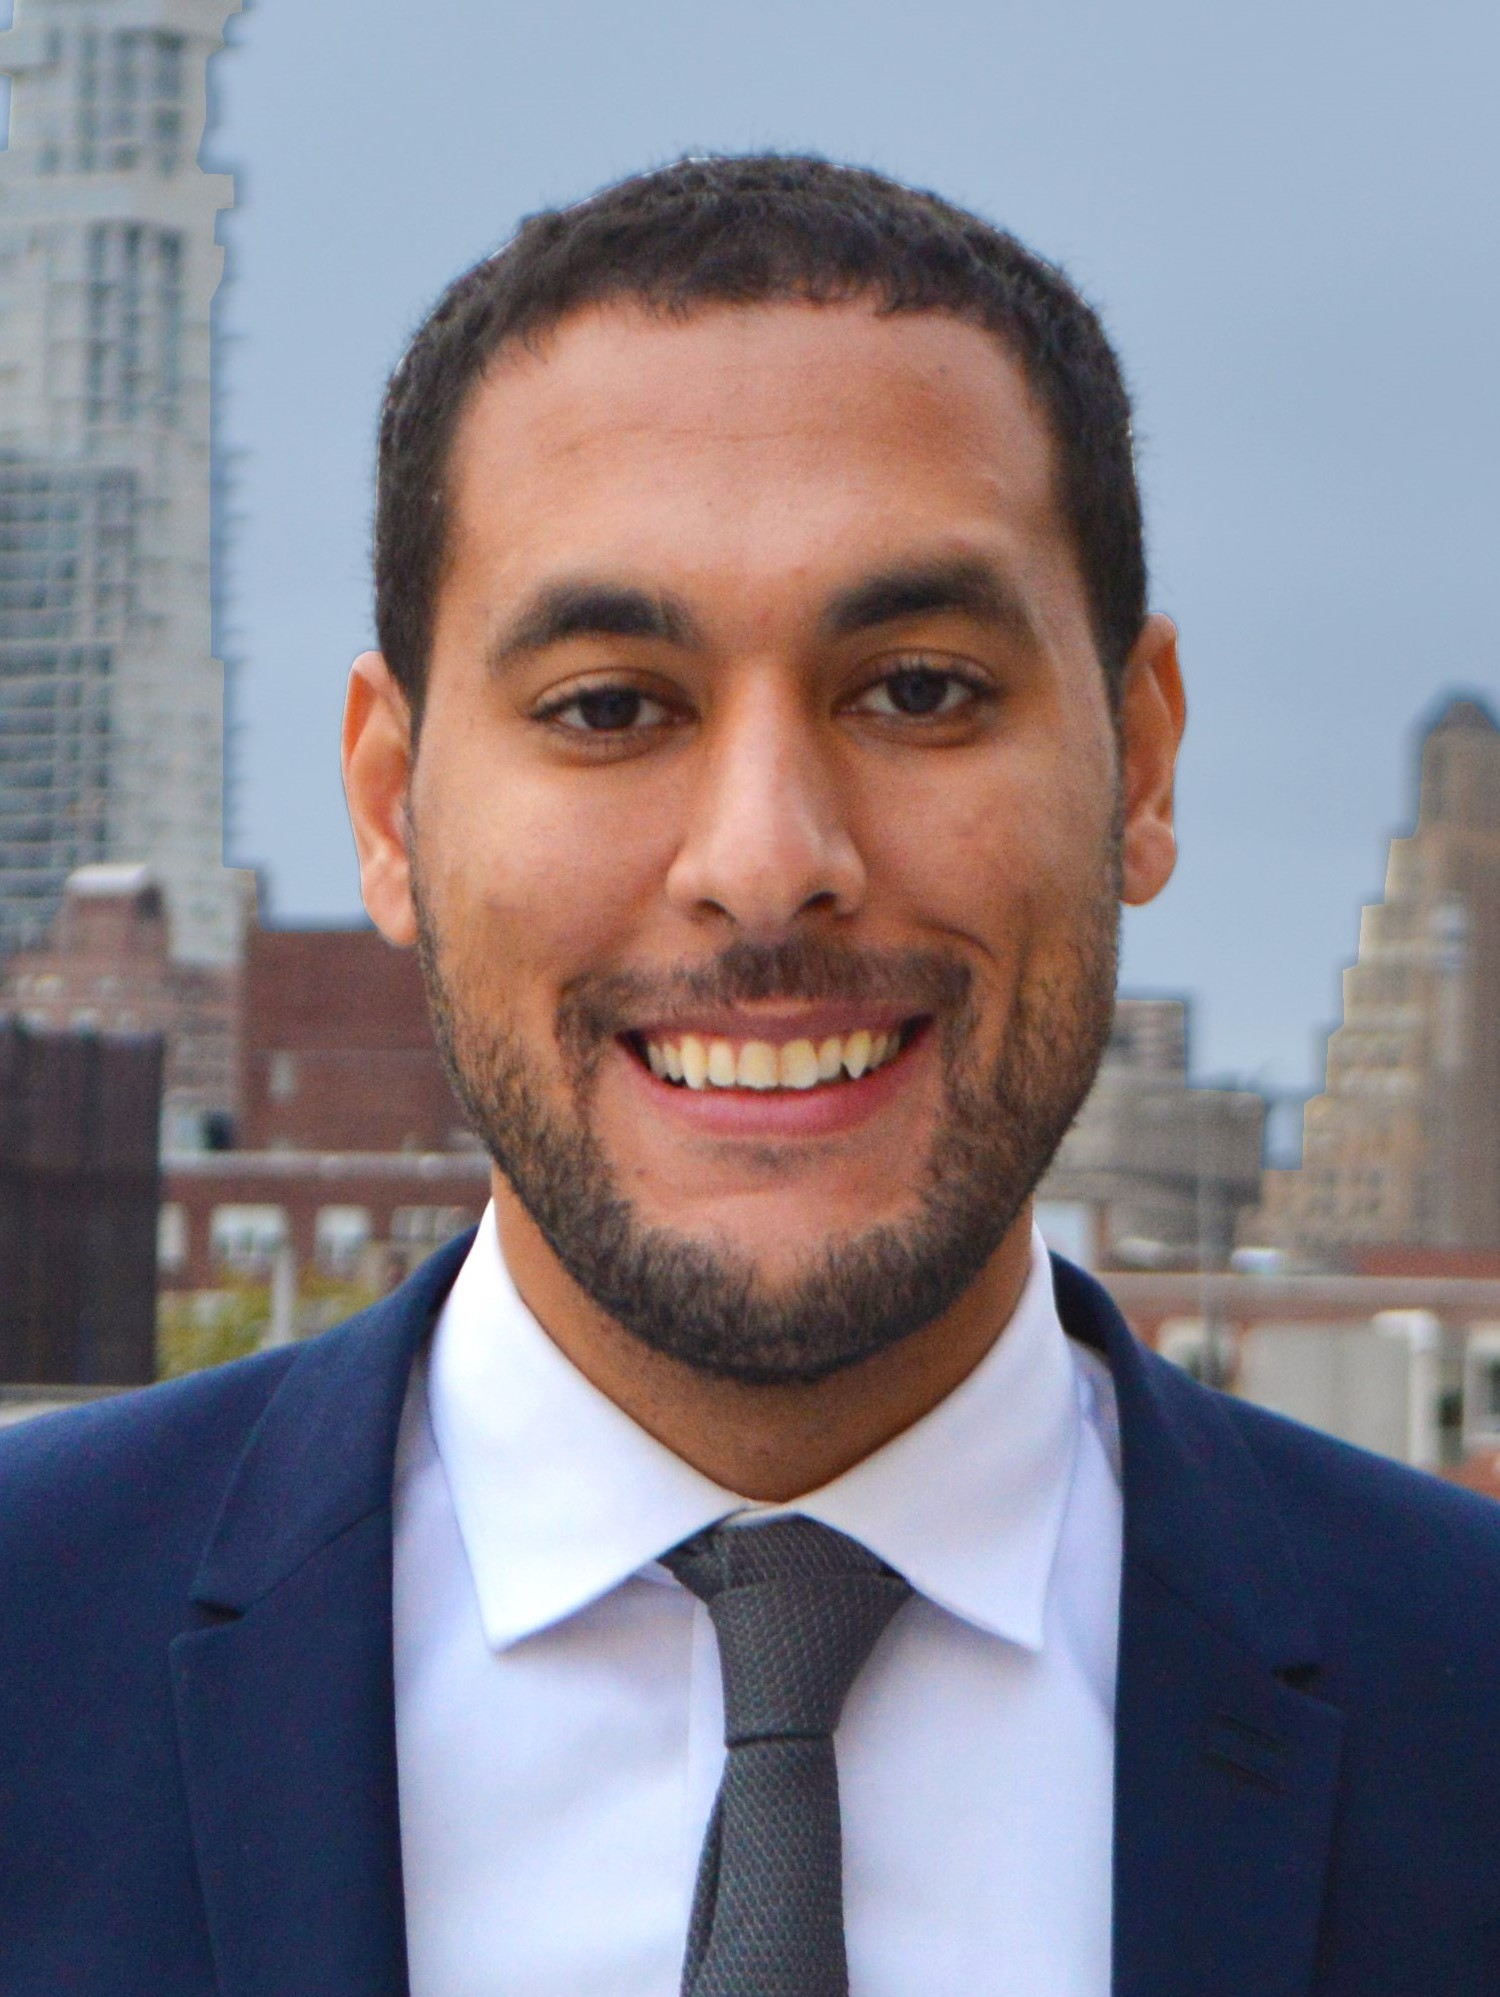 Margaret S. Chin Head Shot